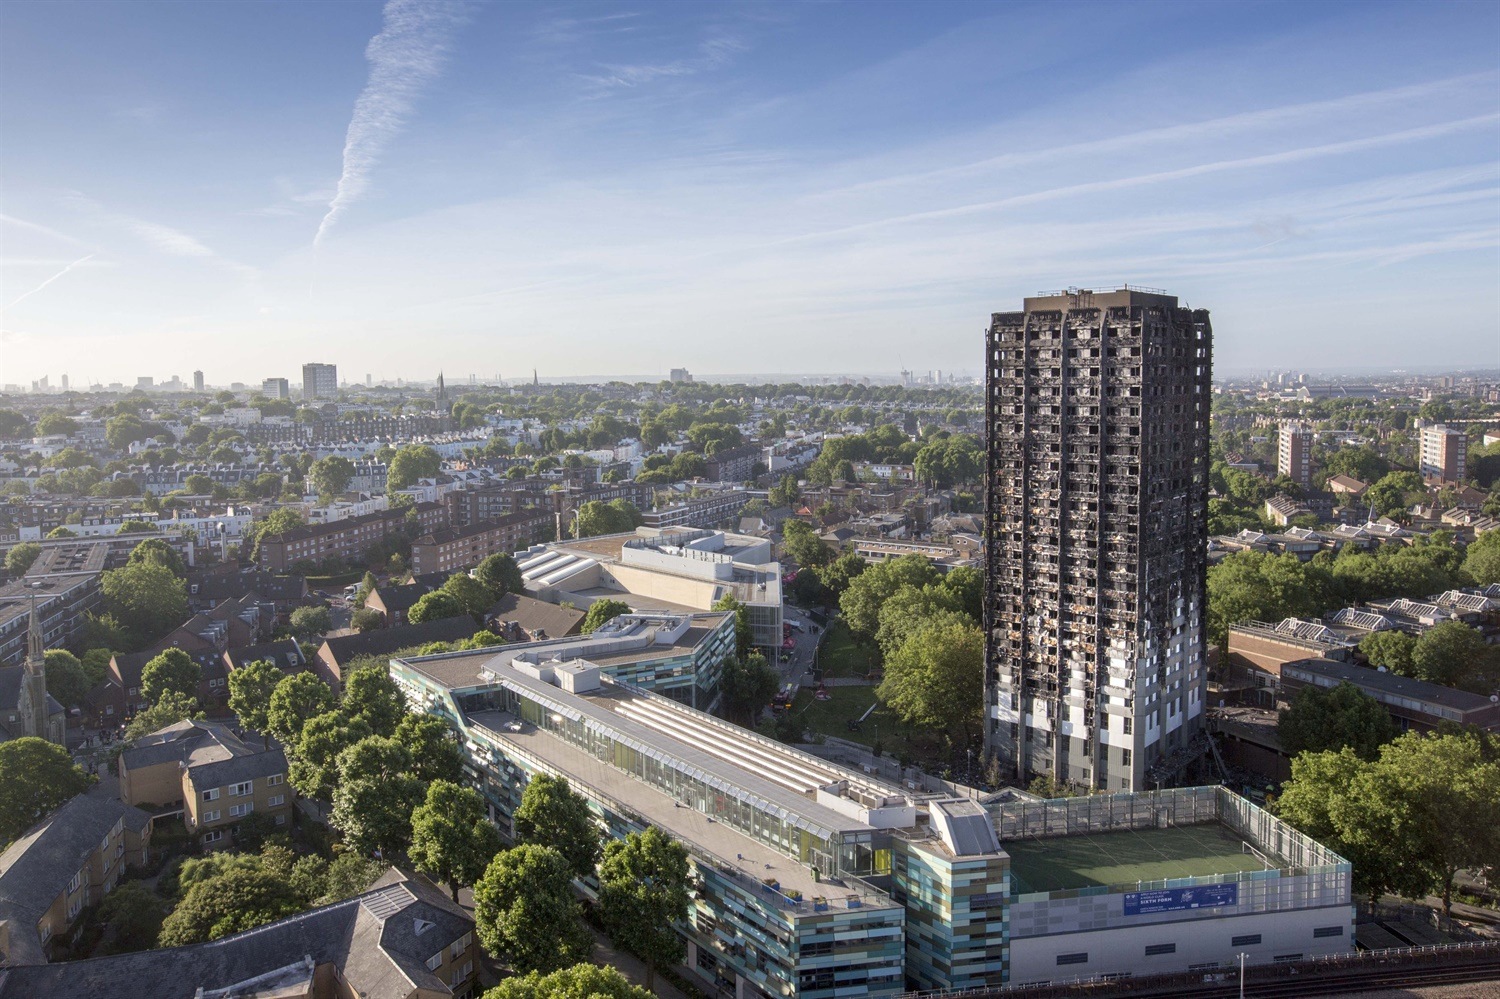 DCLG denies forcing out Kensington CEO following Grenfell Tower tragedy